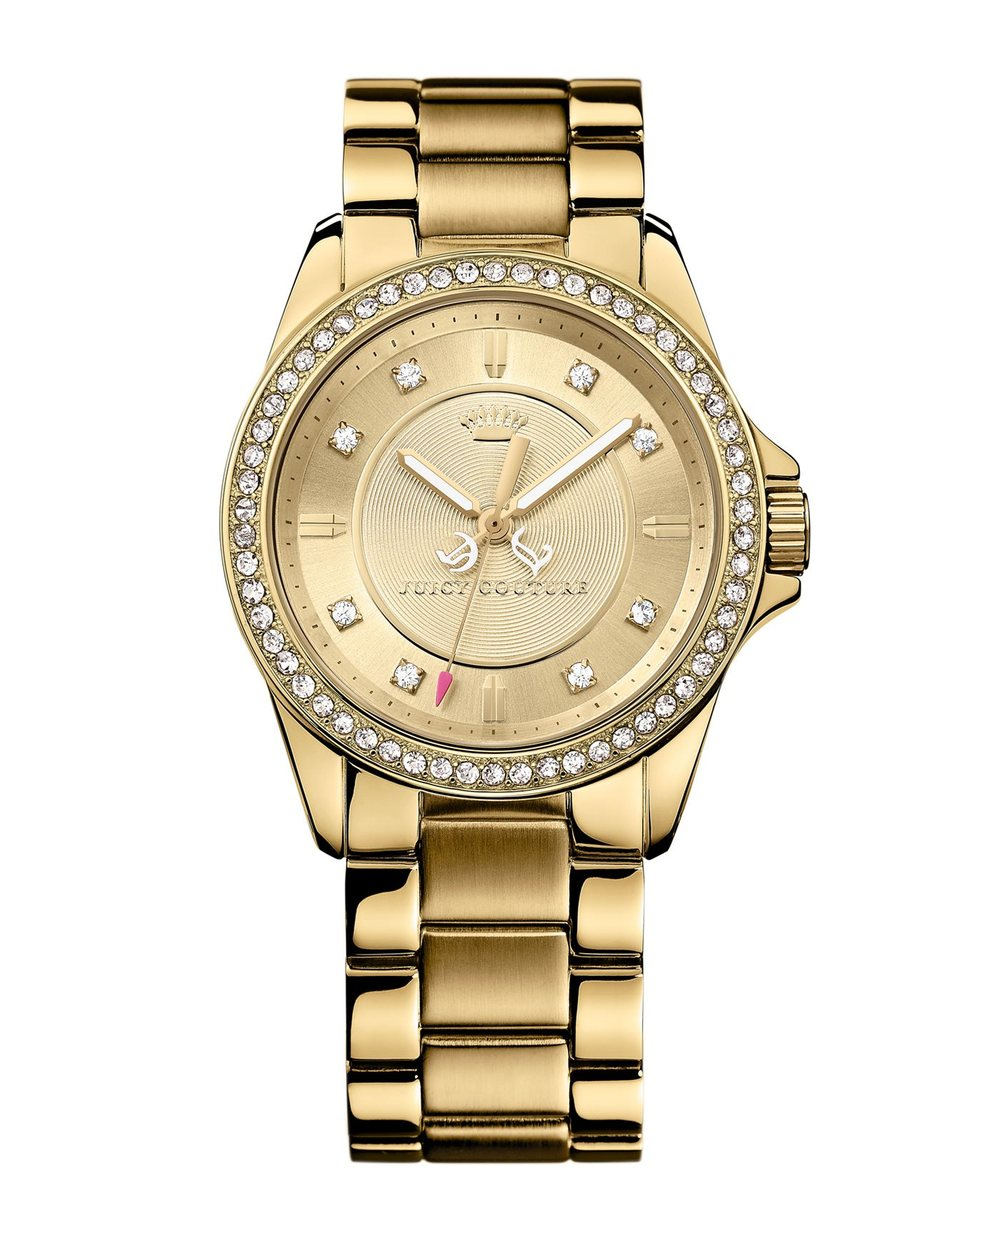 Juicy Couture STELLA Watch